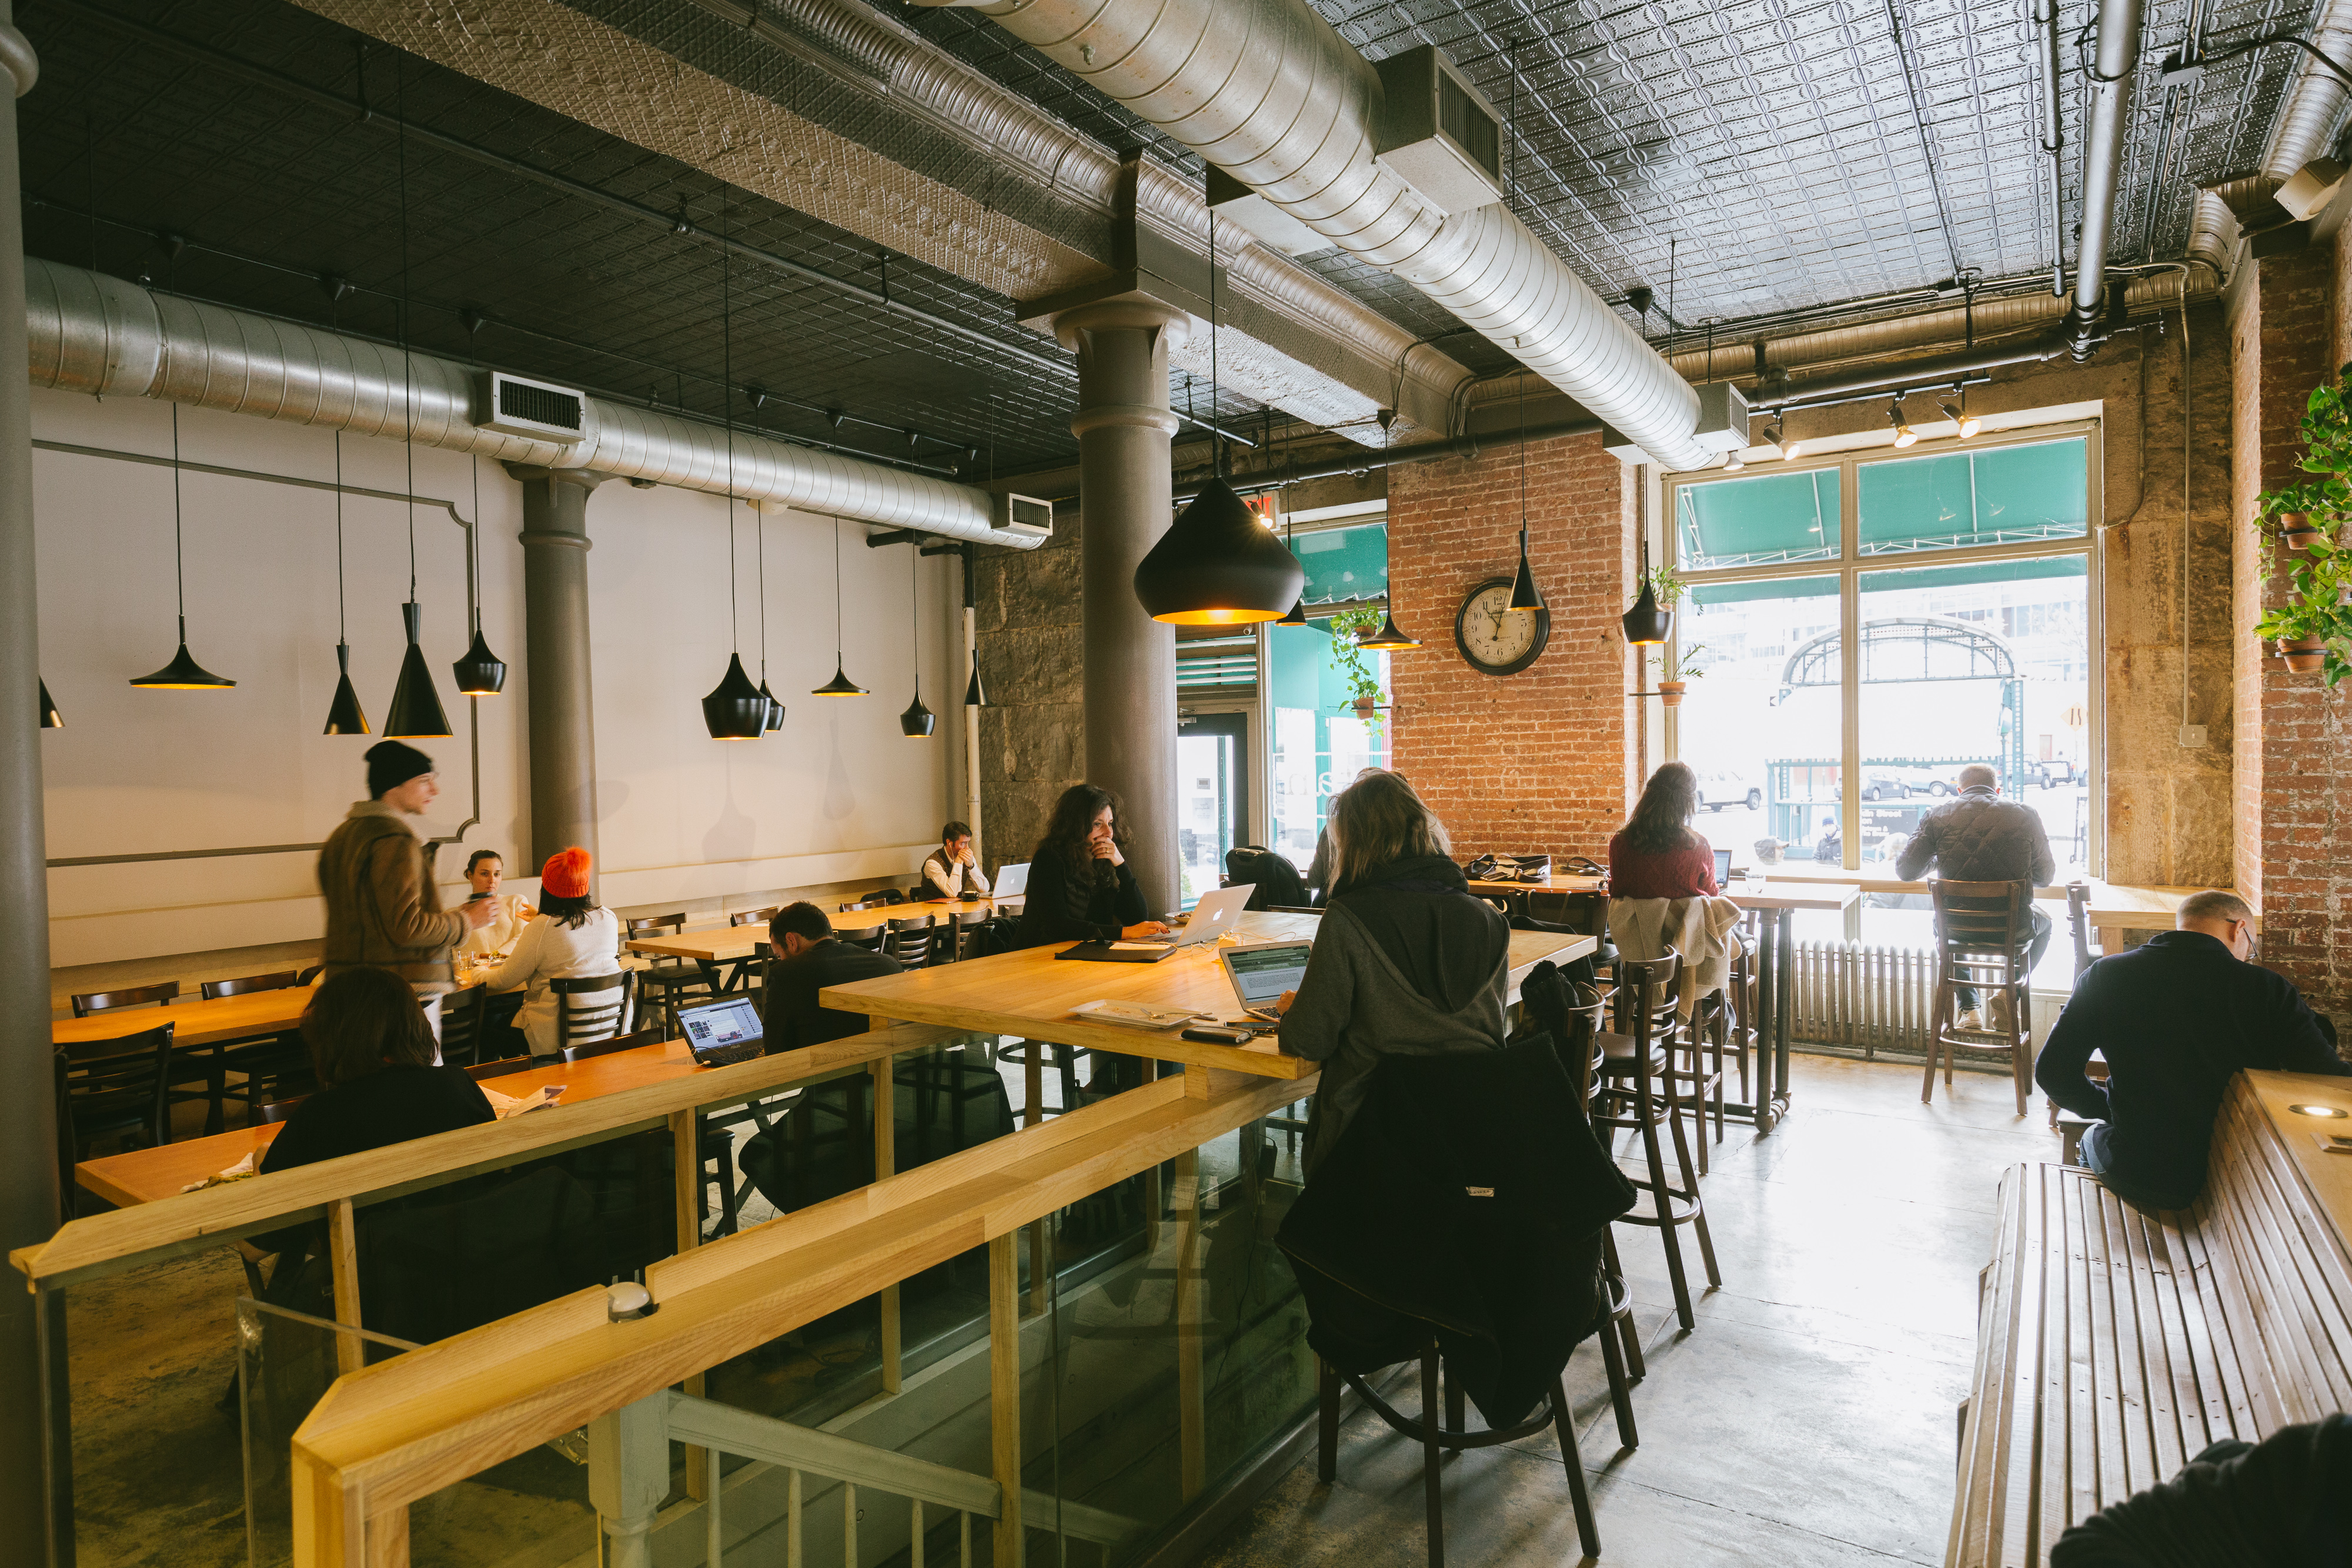 The Best Places To Eat In Tribeca - New York - The Infatuation